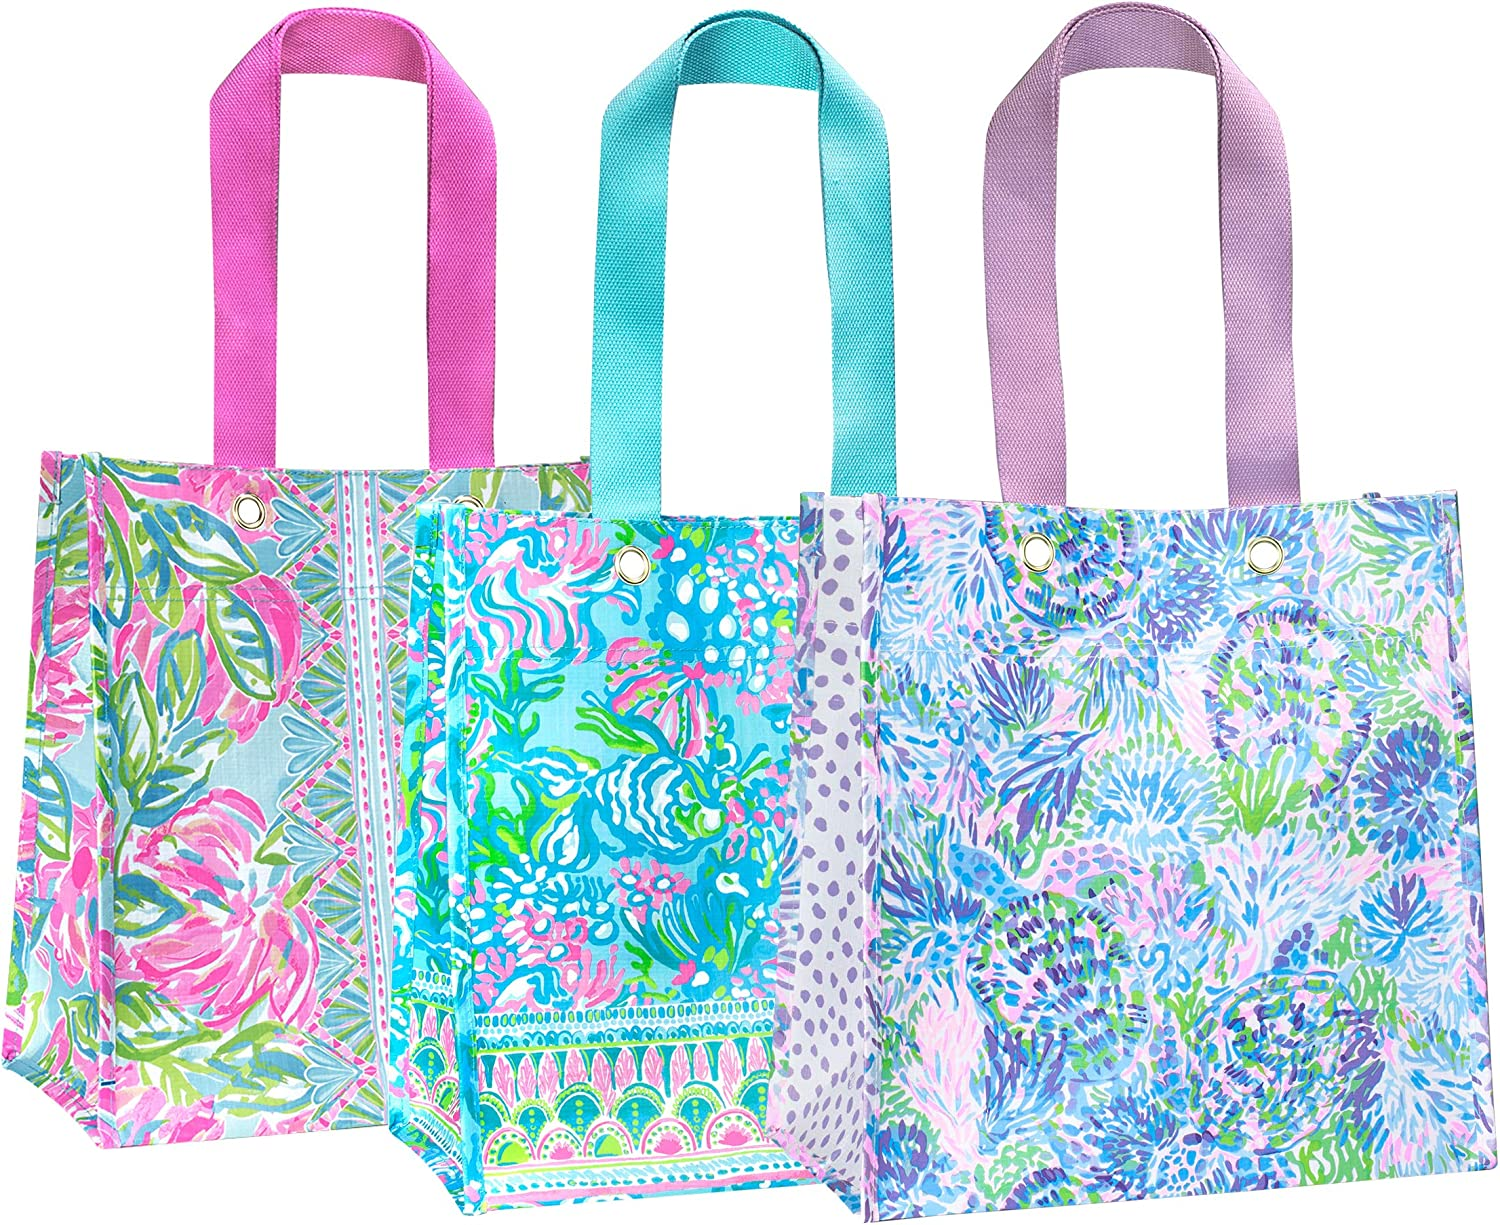 Lilly Pulitzer Market Shopper Bag Set of 2, Reusable Grocery Totes with Comfortable Shoulder Straps